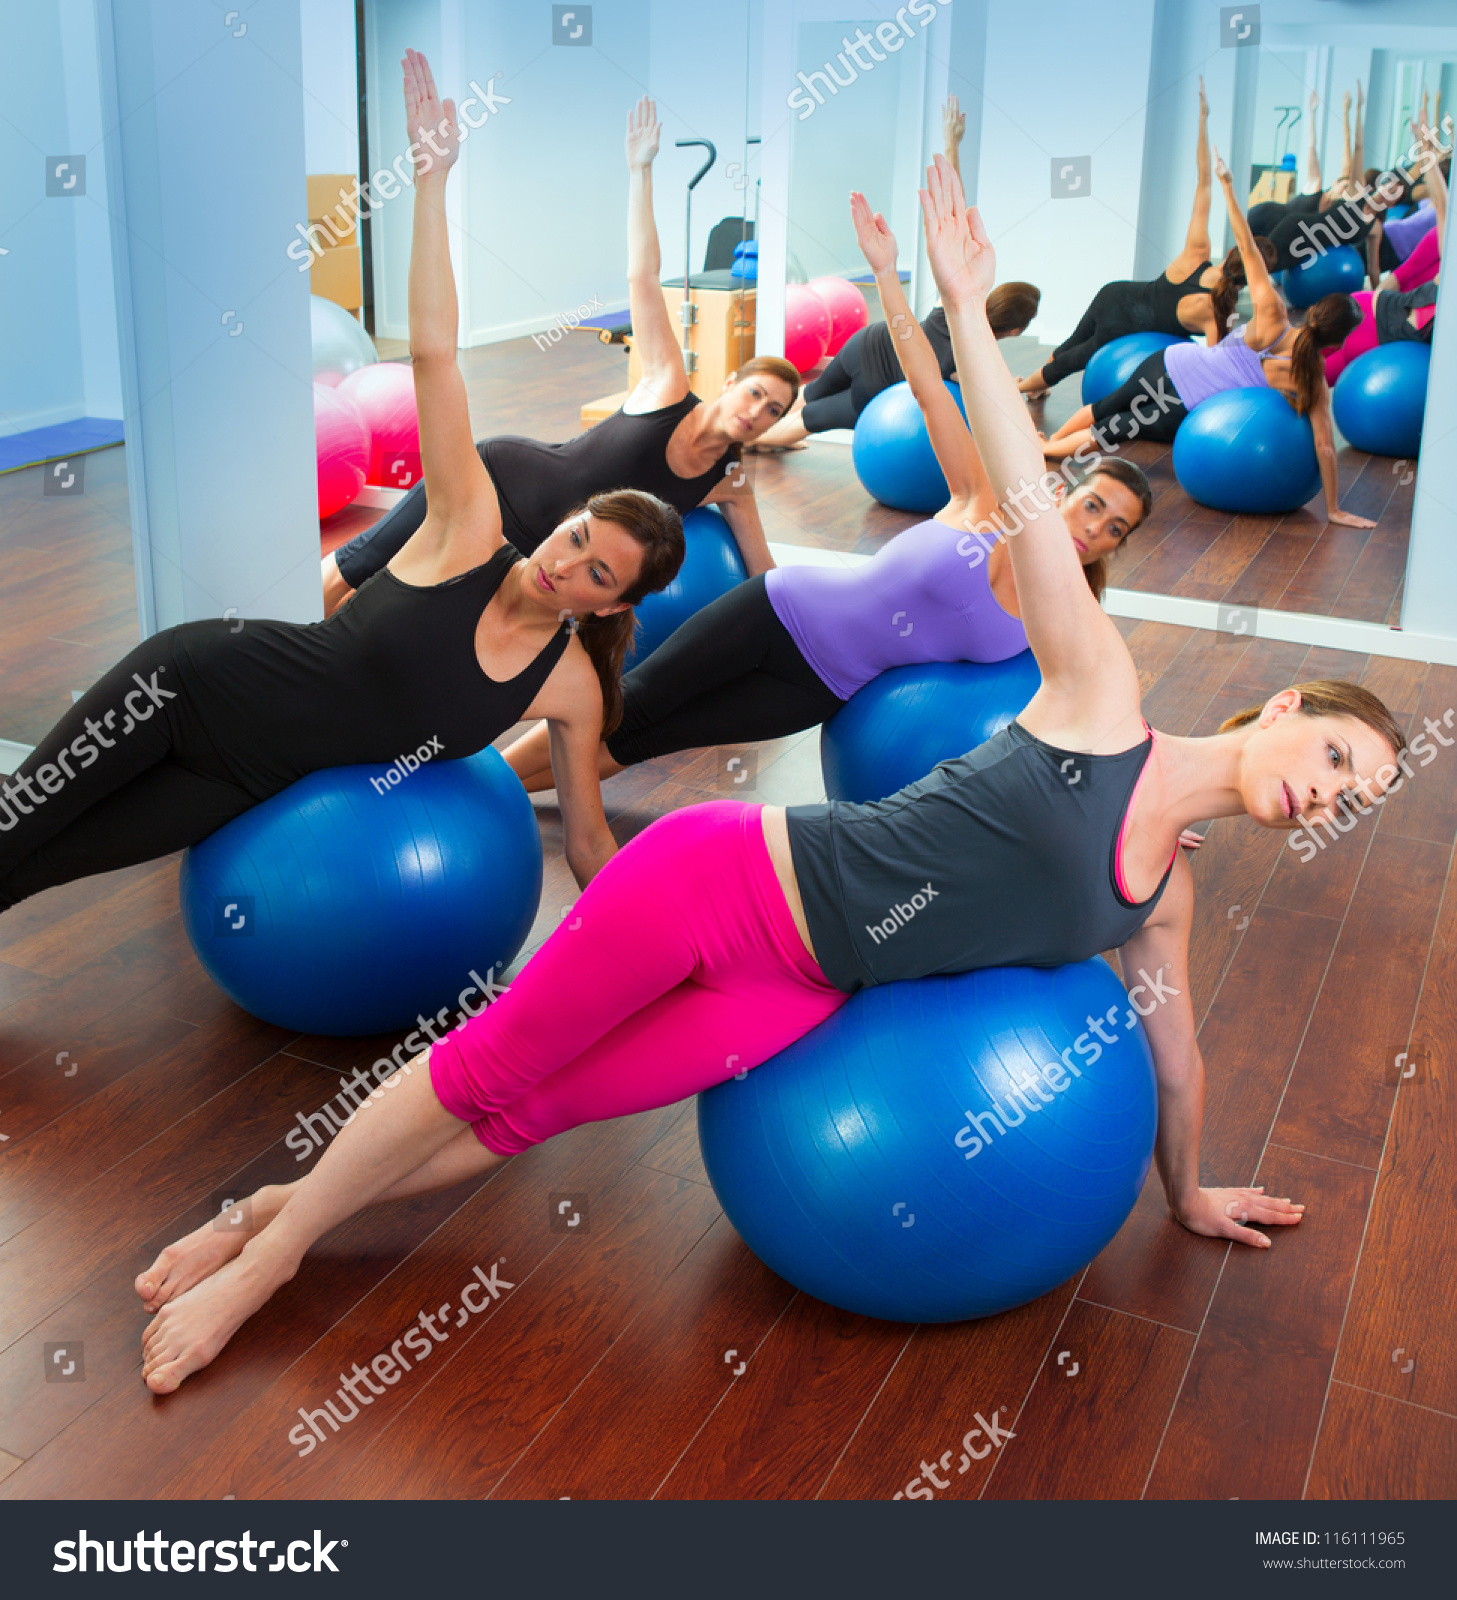 Woman Pilates Chair Exercises Fitness Stock Photo: Pilates Aerobics Women Group With Stability Ball In A Row